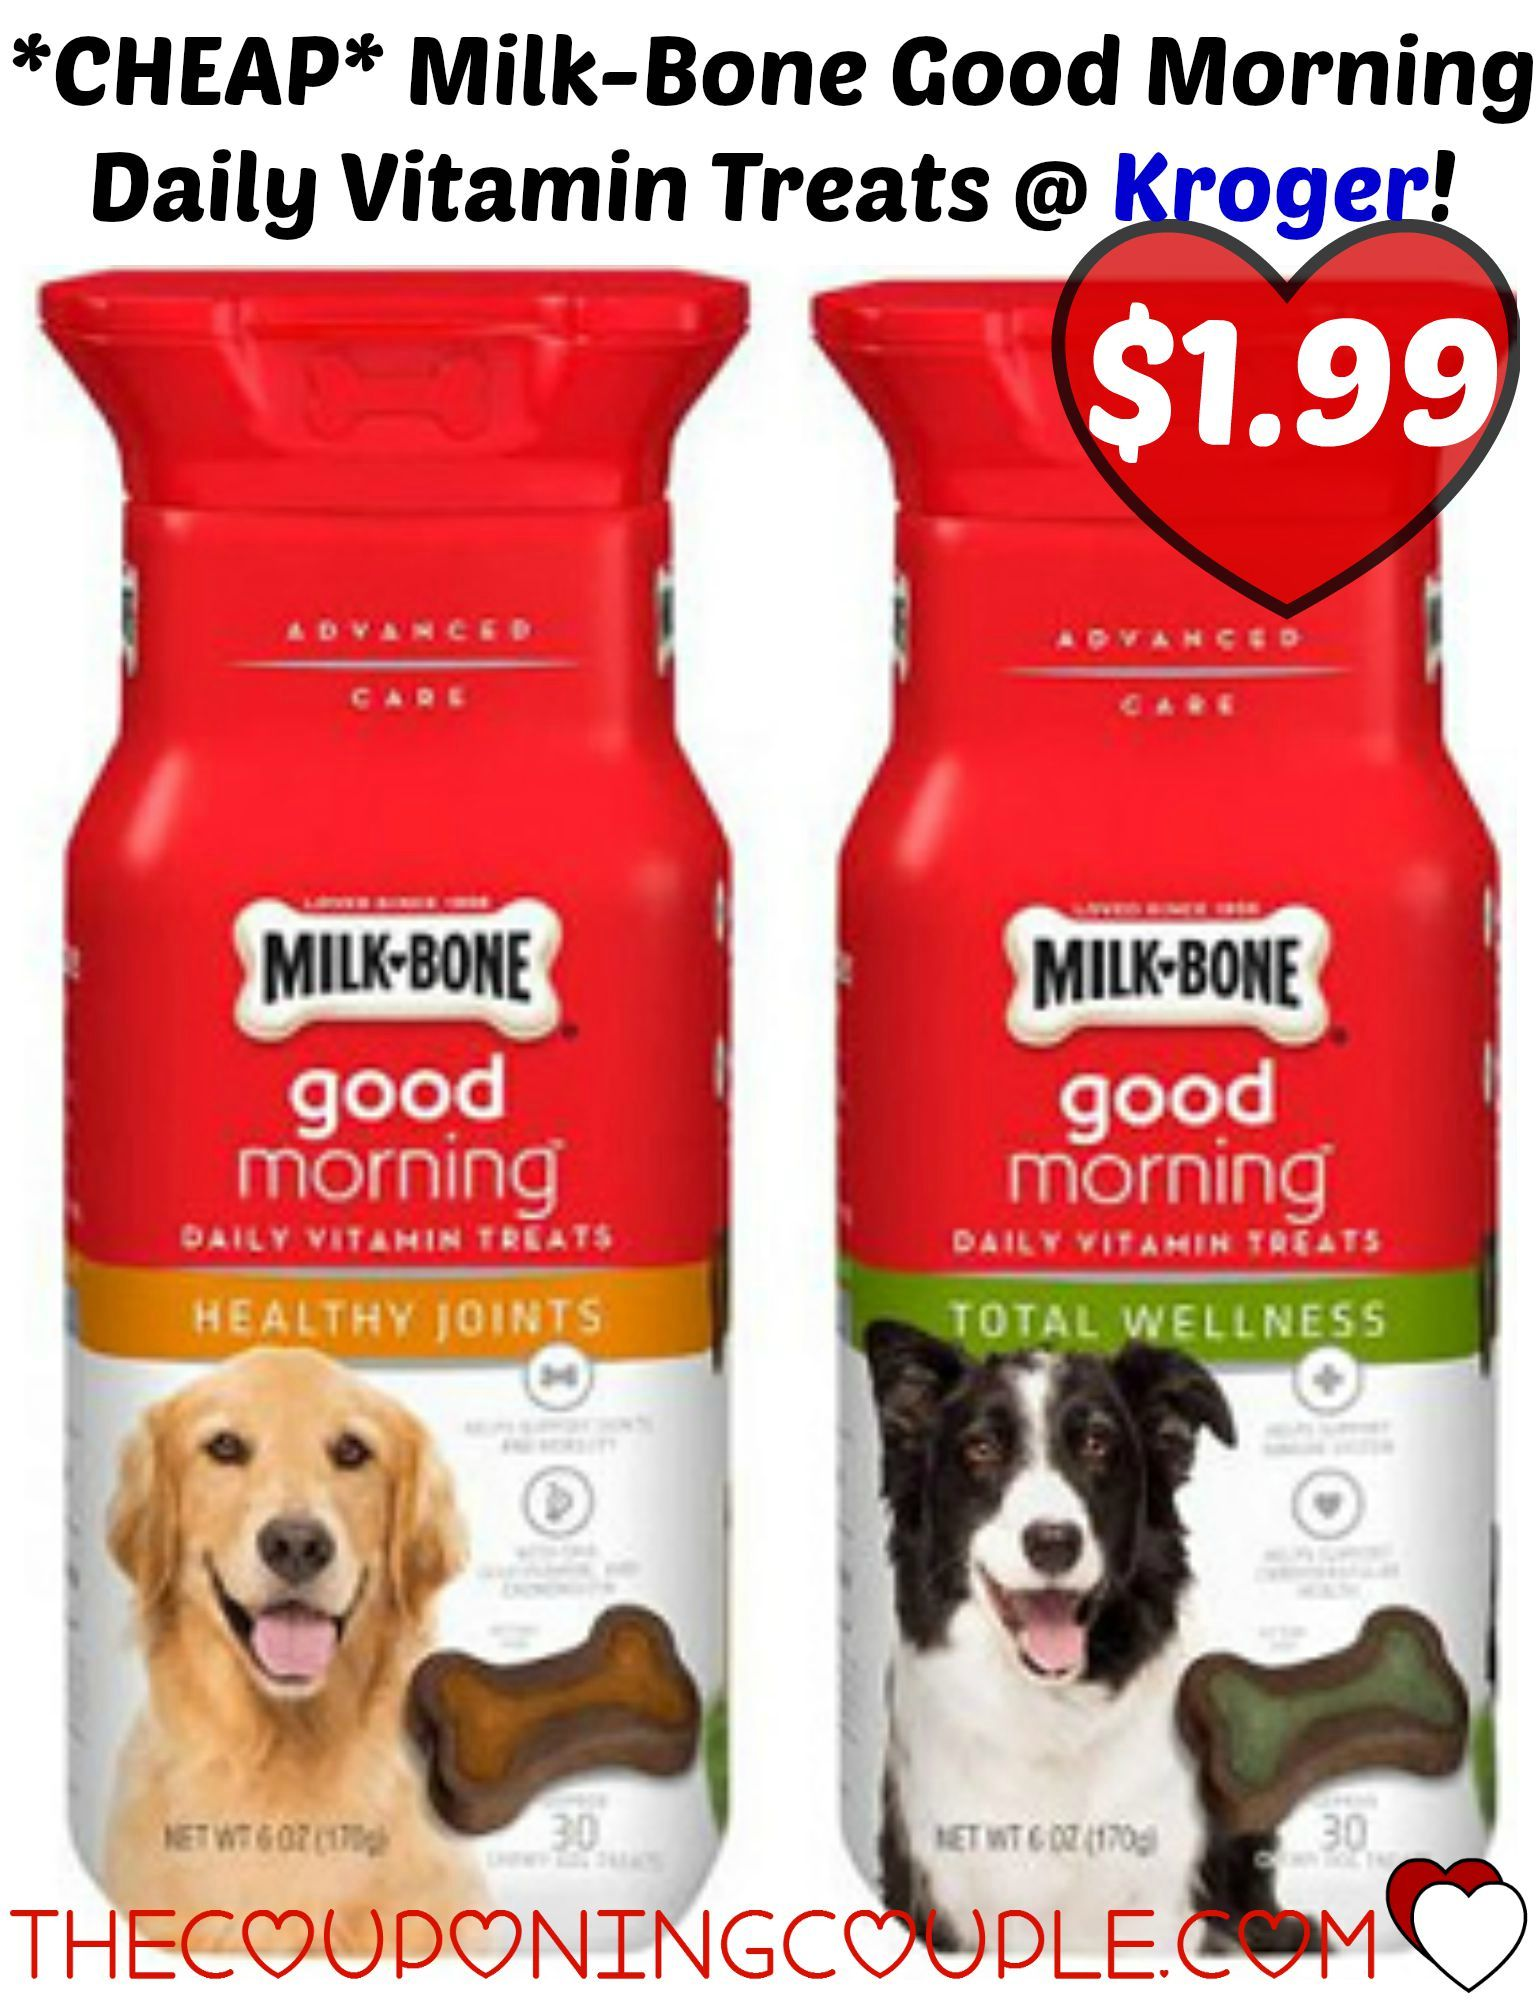 $1/1 Milk-Bone Good Morning Daily Vitamin Treats Coupon + Kroger Deal! Head over and print this coupon to score these for just $1.99 a box at Kroger thru 9/15!  Click the link below to get all of the details ► http://www.thecouponingcouple.com/11-milk-bone-good-morning-daily-vitamin-treats-coupon-kroger-deal/ #Coupons #Couponing #CouponCommunity  Visit us at http://www.thecouponingcouple.com for more great posts!